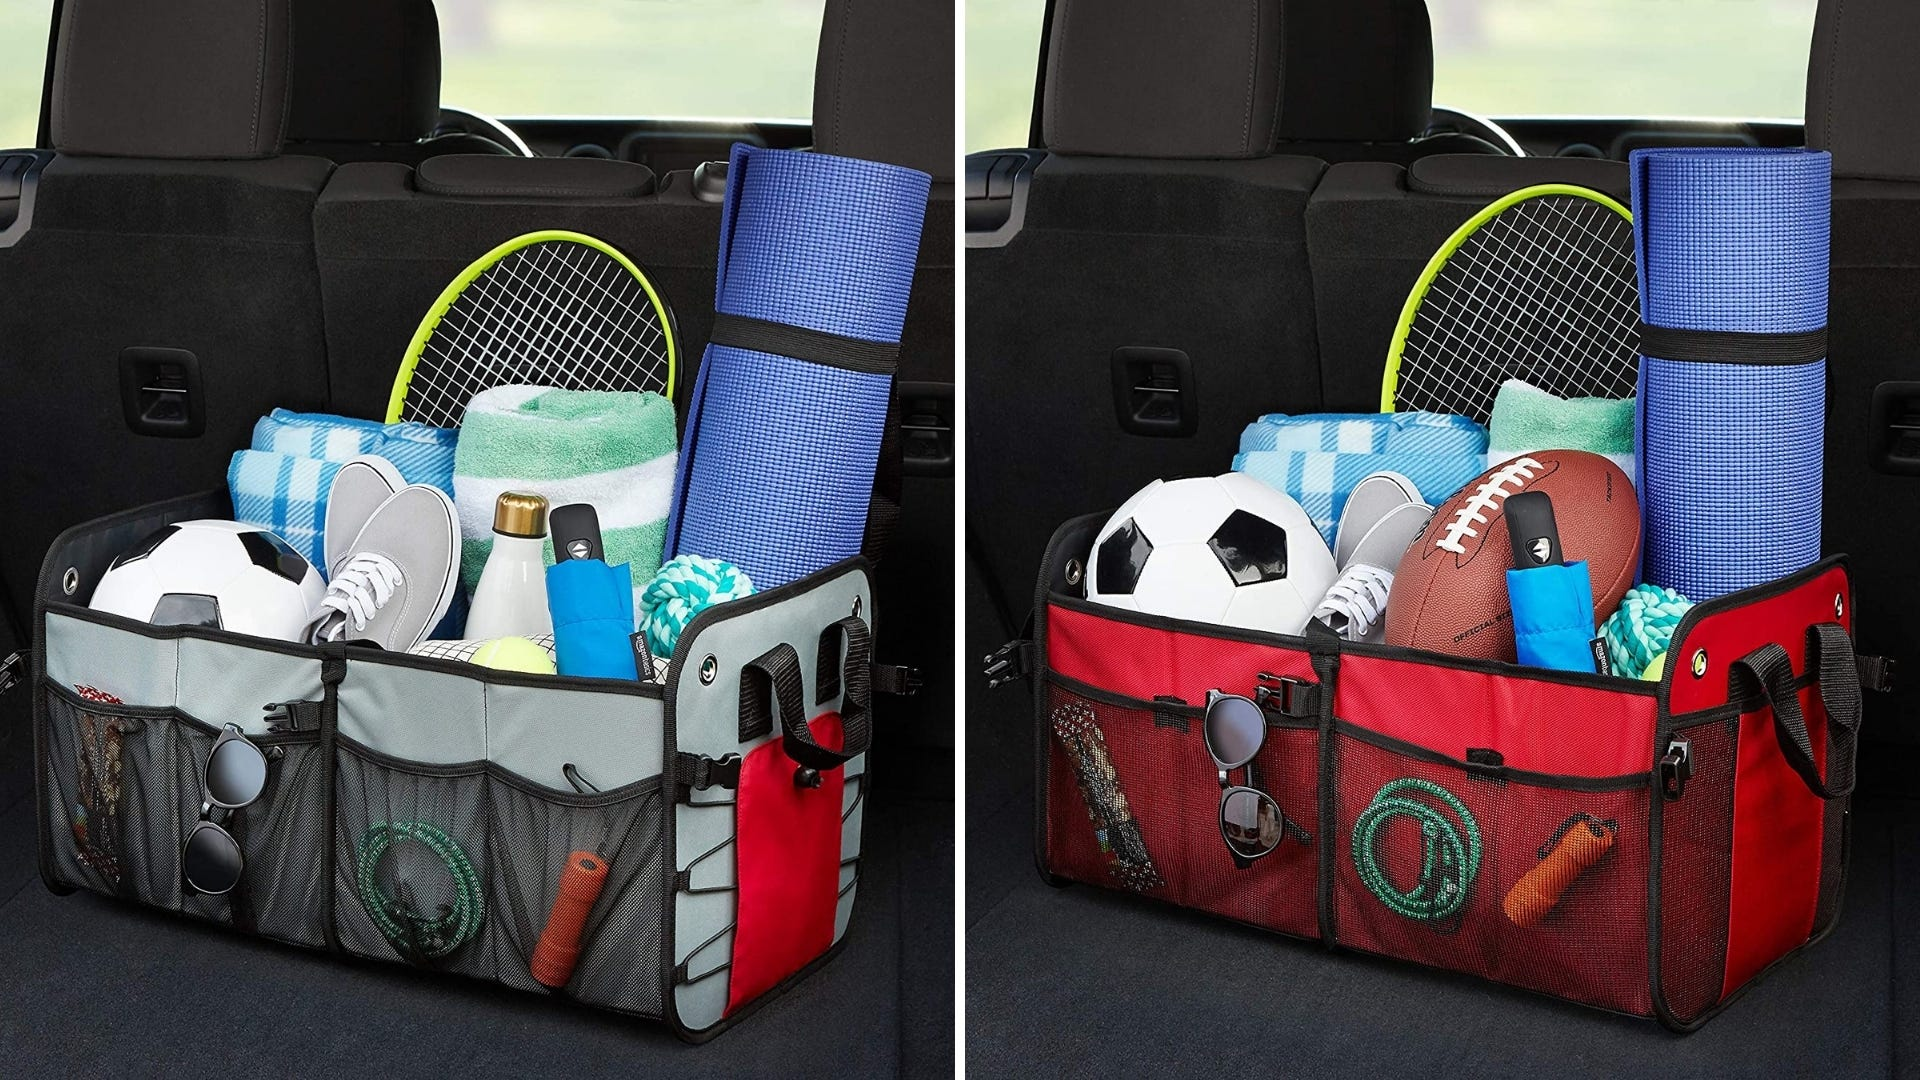 Both a gray and red car organizer sit in the back of a trunk filled with sports gear